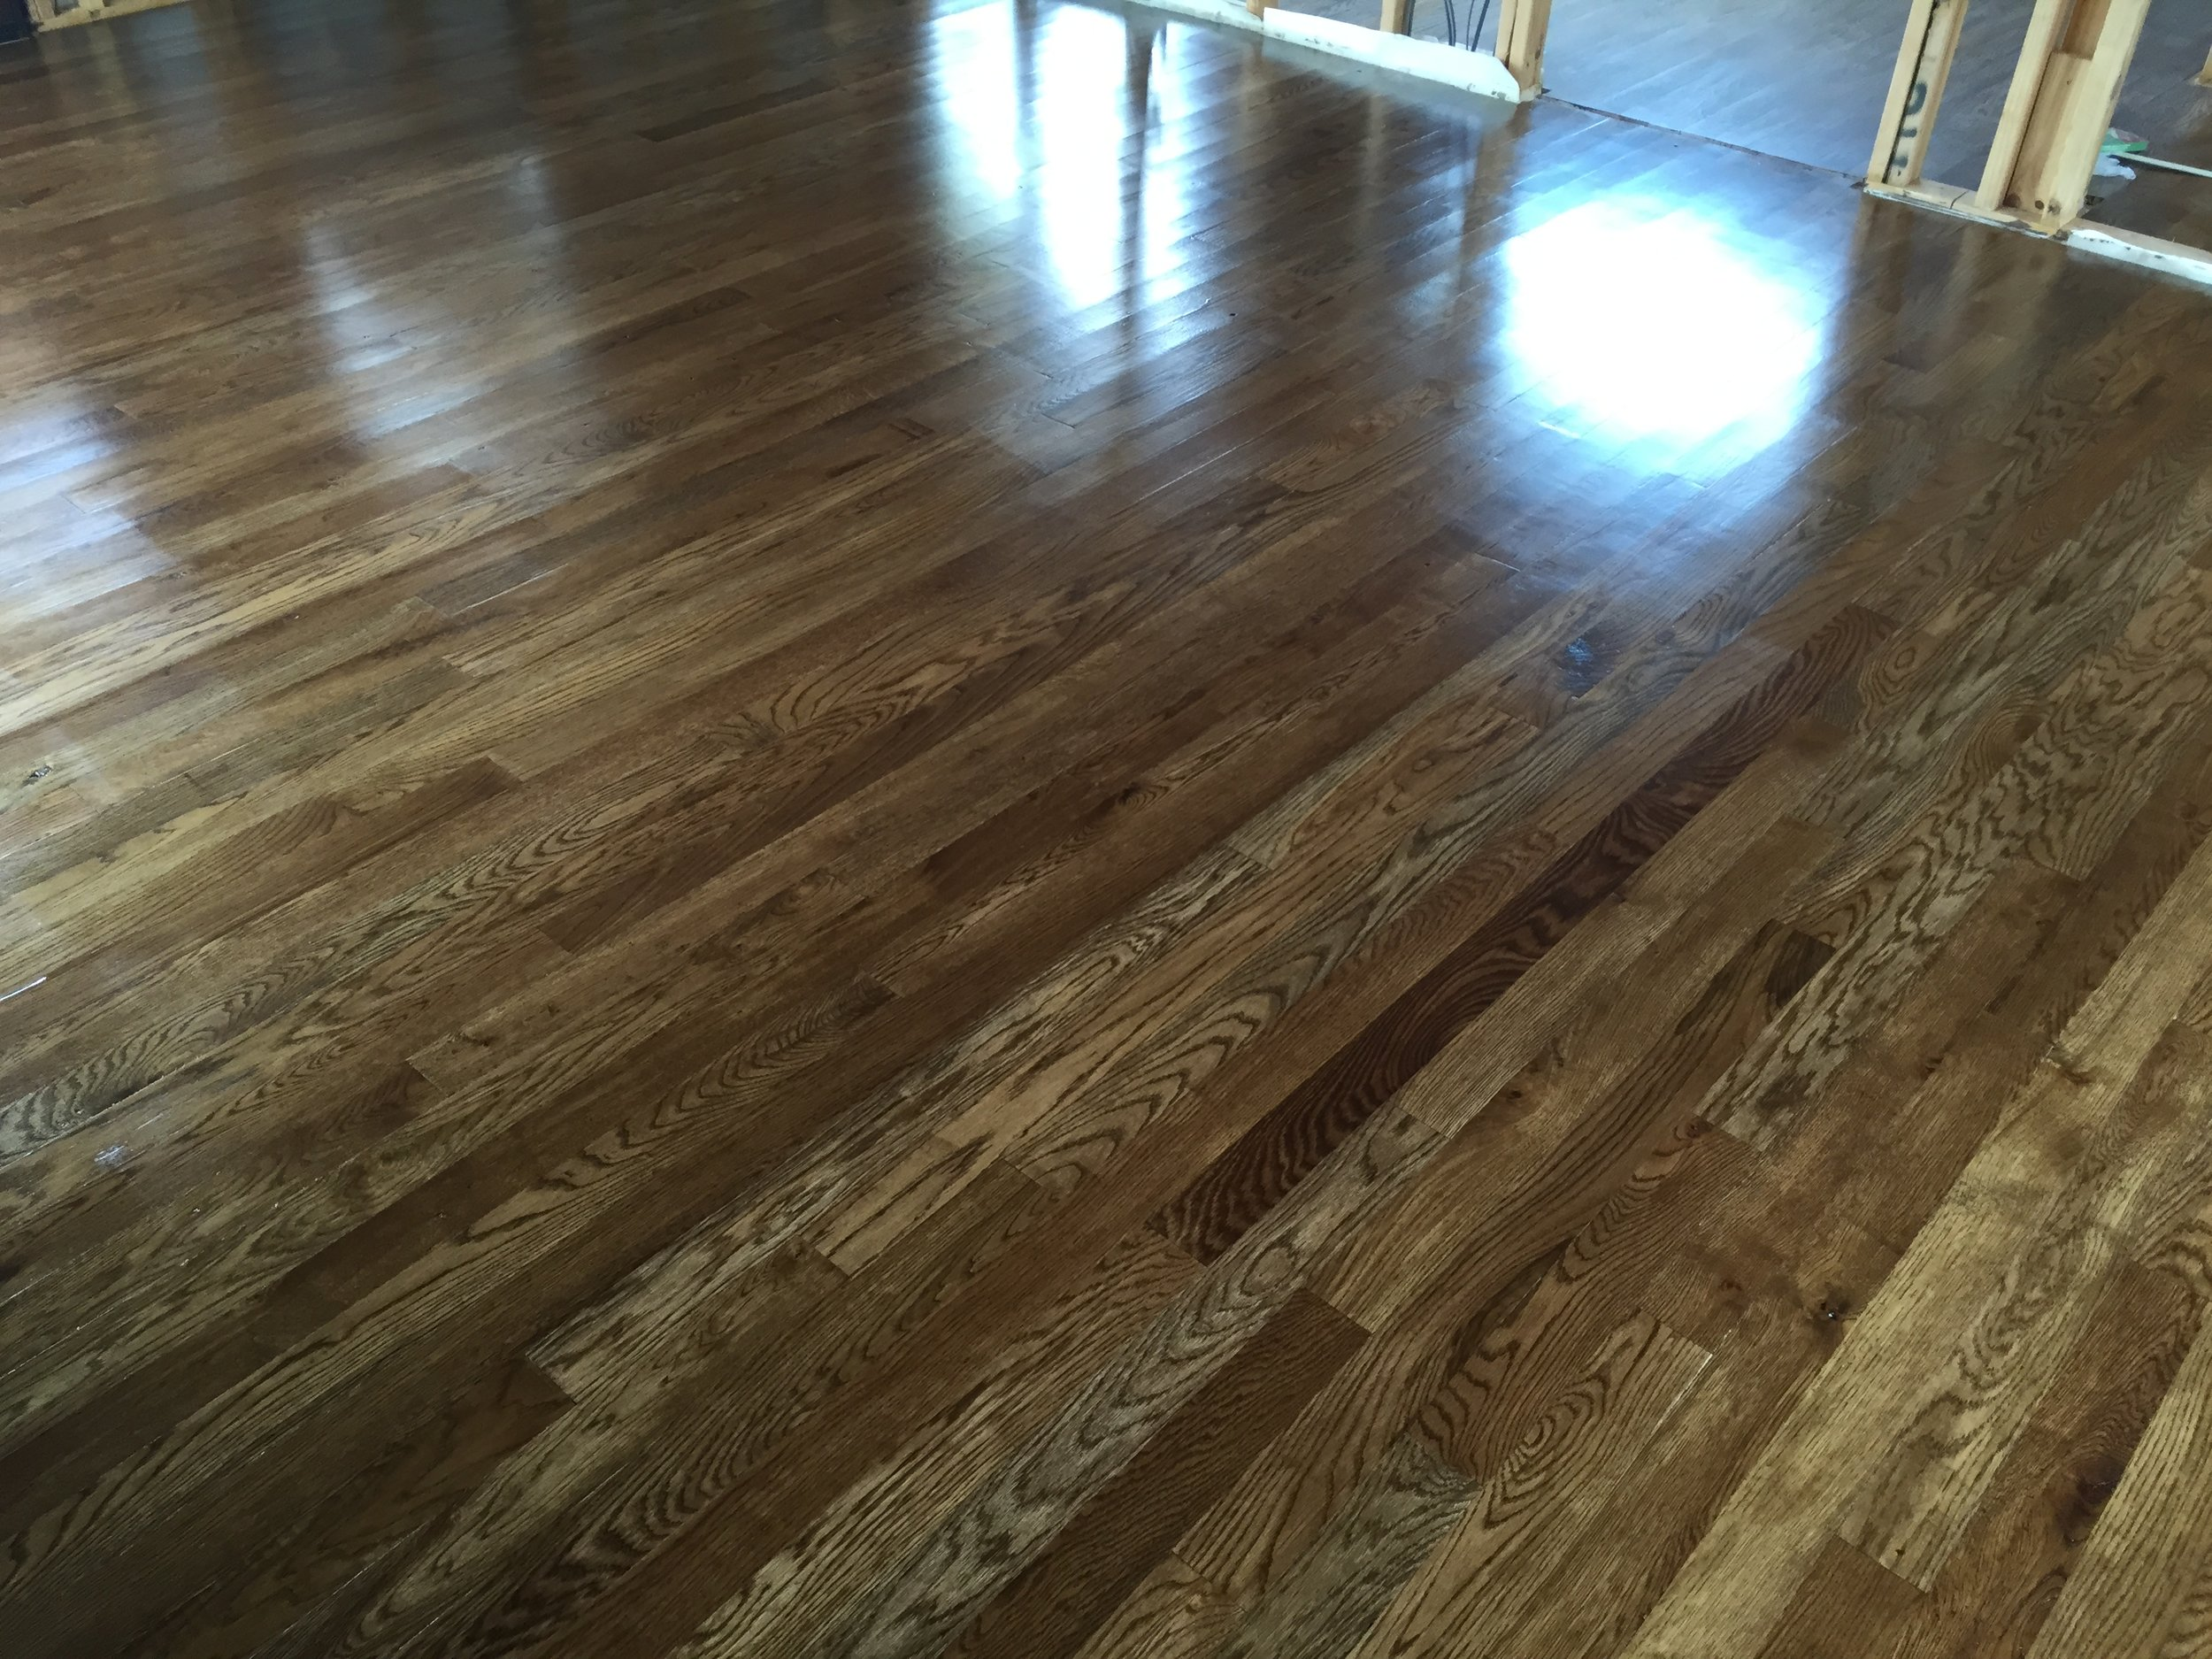 Hardwood flooring installed, stained and sealed